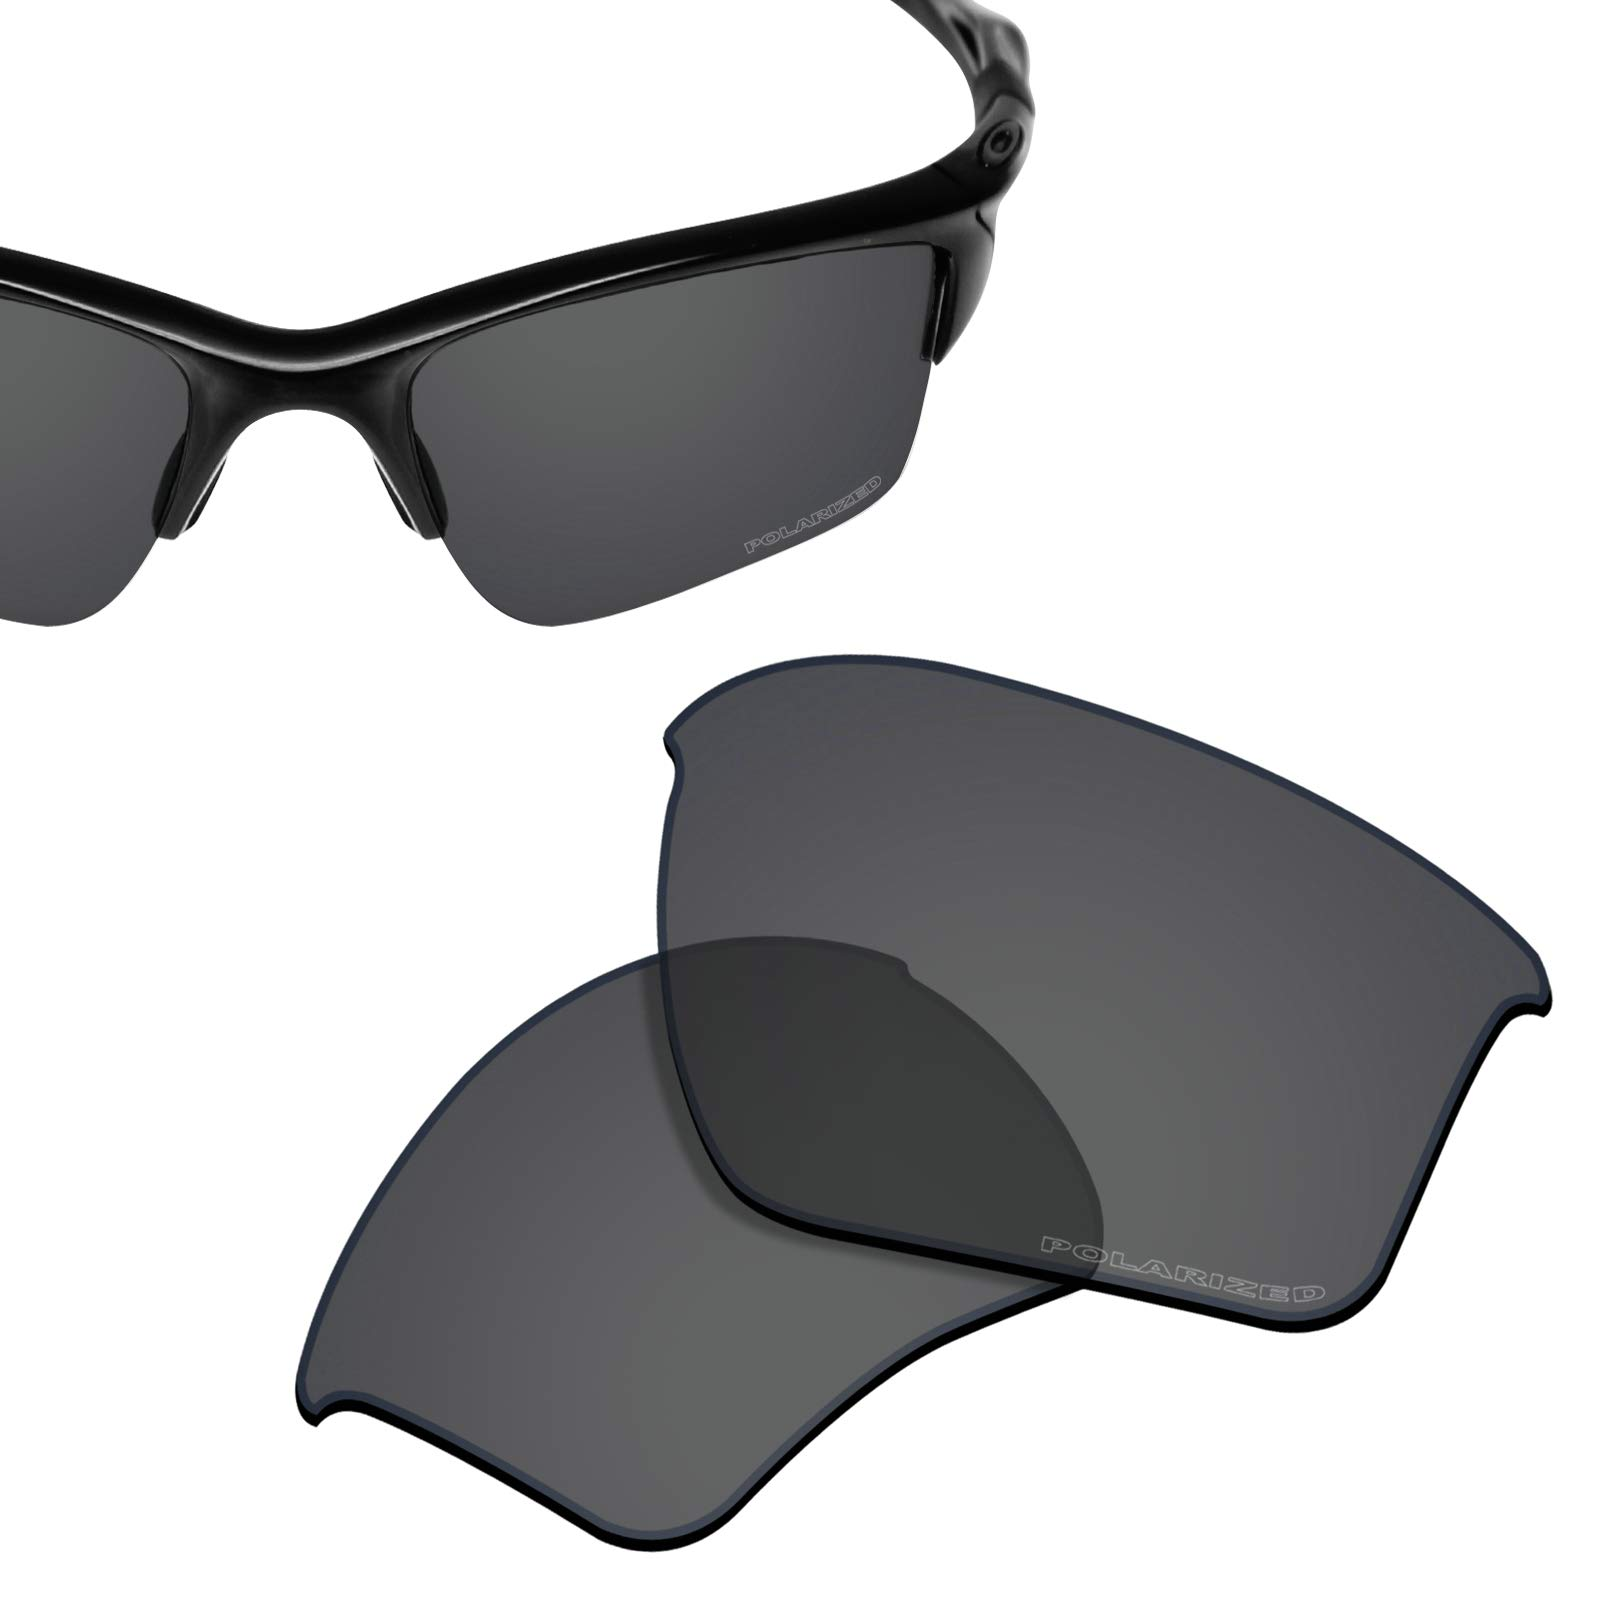 762d9f393d New 1.8mm Thick UV400 Replacement Lenses for Oakley Half Jacket 2.0 XL -  Options